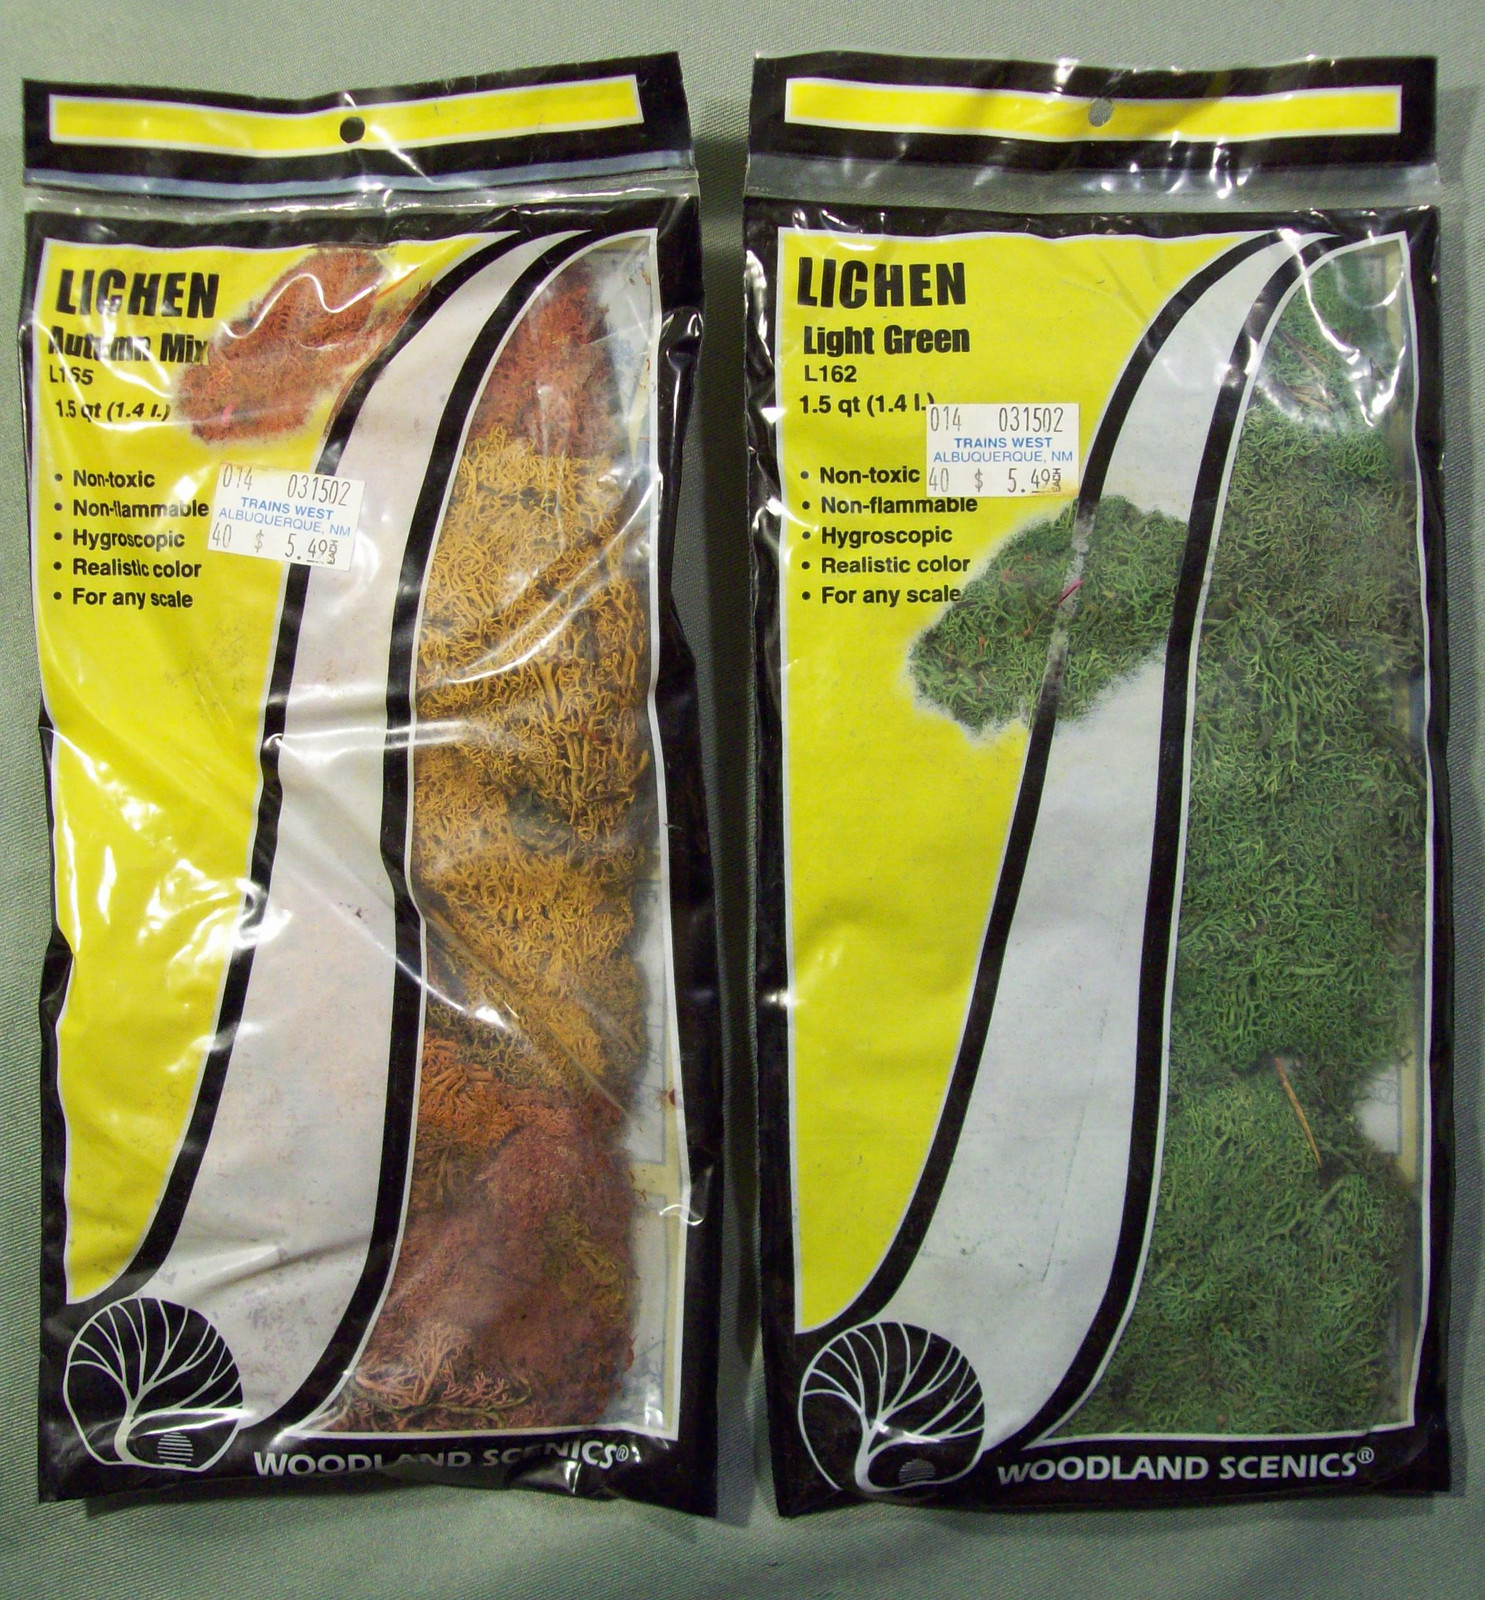 Primary image for 2 PACKS NOS WOODLAND SCENICS AUTUMN MIX LICHEN L165 & LIGHT GREEN LICHEN L162